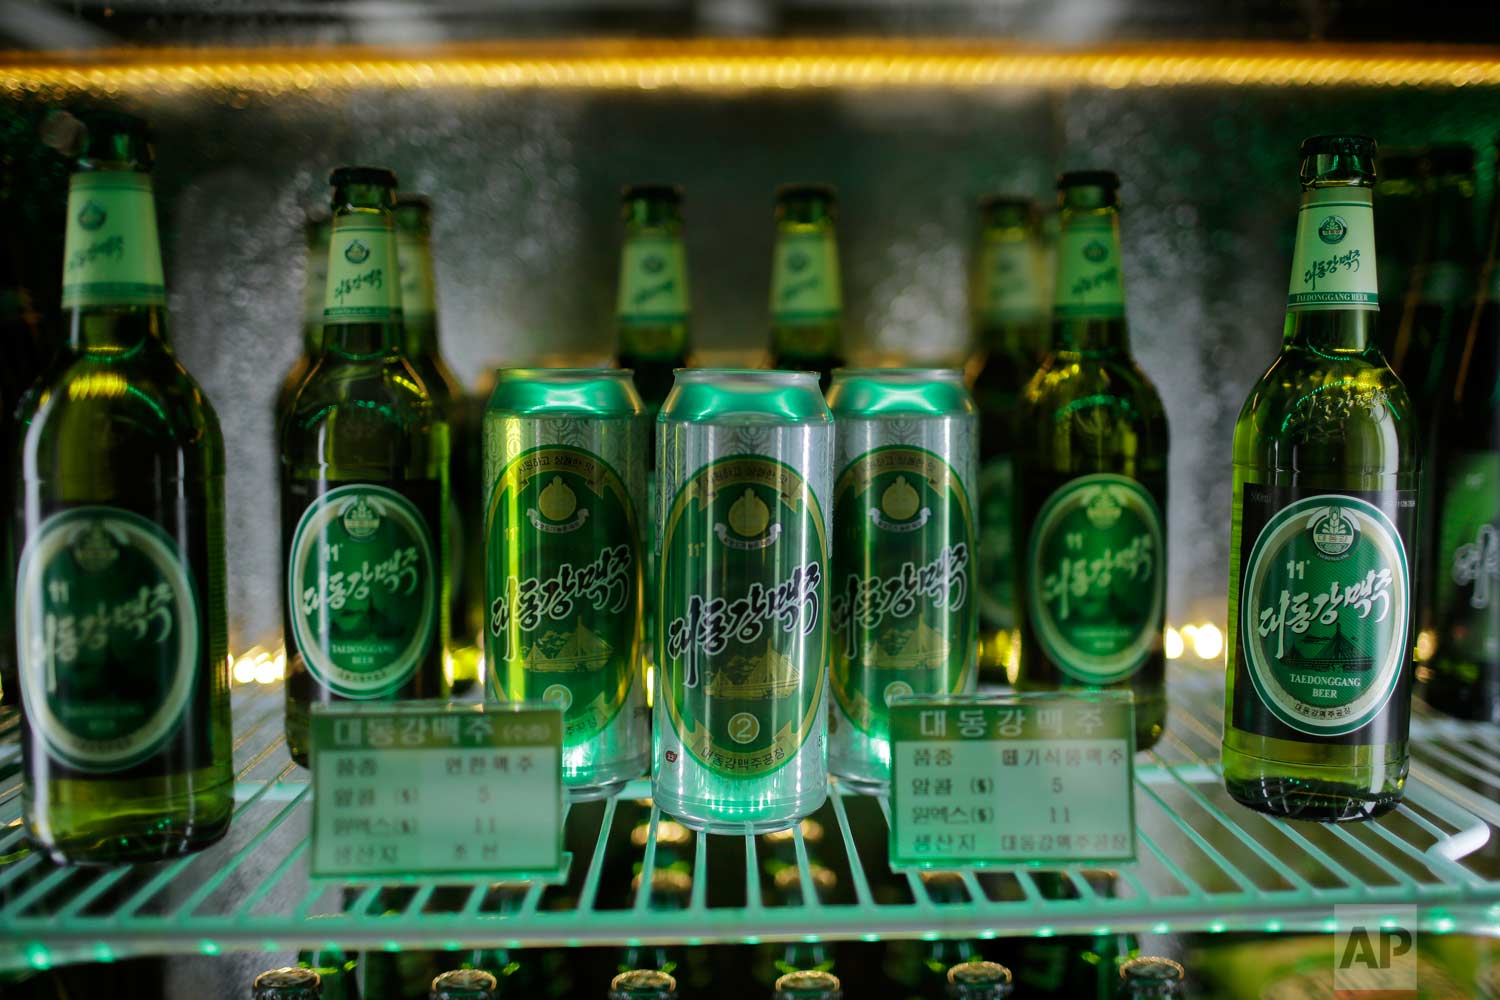 In this Wednesday, July 26, 2017, photo, samples of different types of Taedonggang beer are displayed in a refrigerator at the Taedonggang Brewery in Pyongyang, North Korea.  (AP Photo/Wong Maye-E)